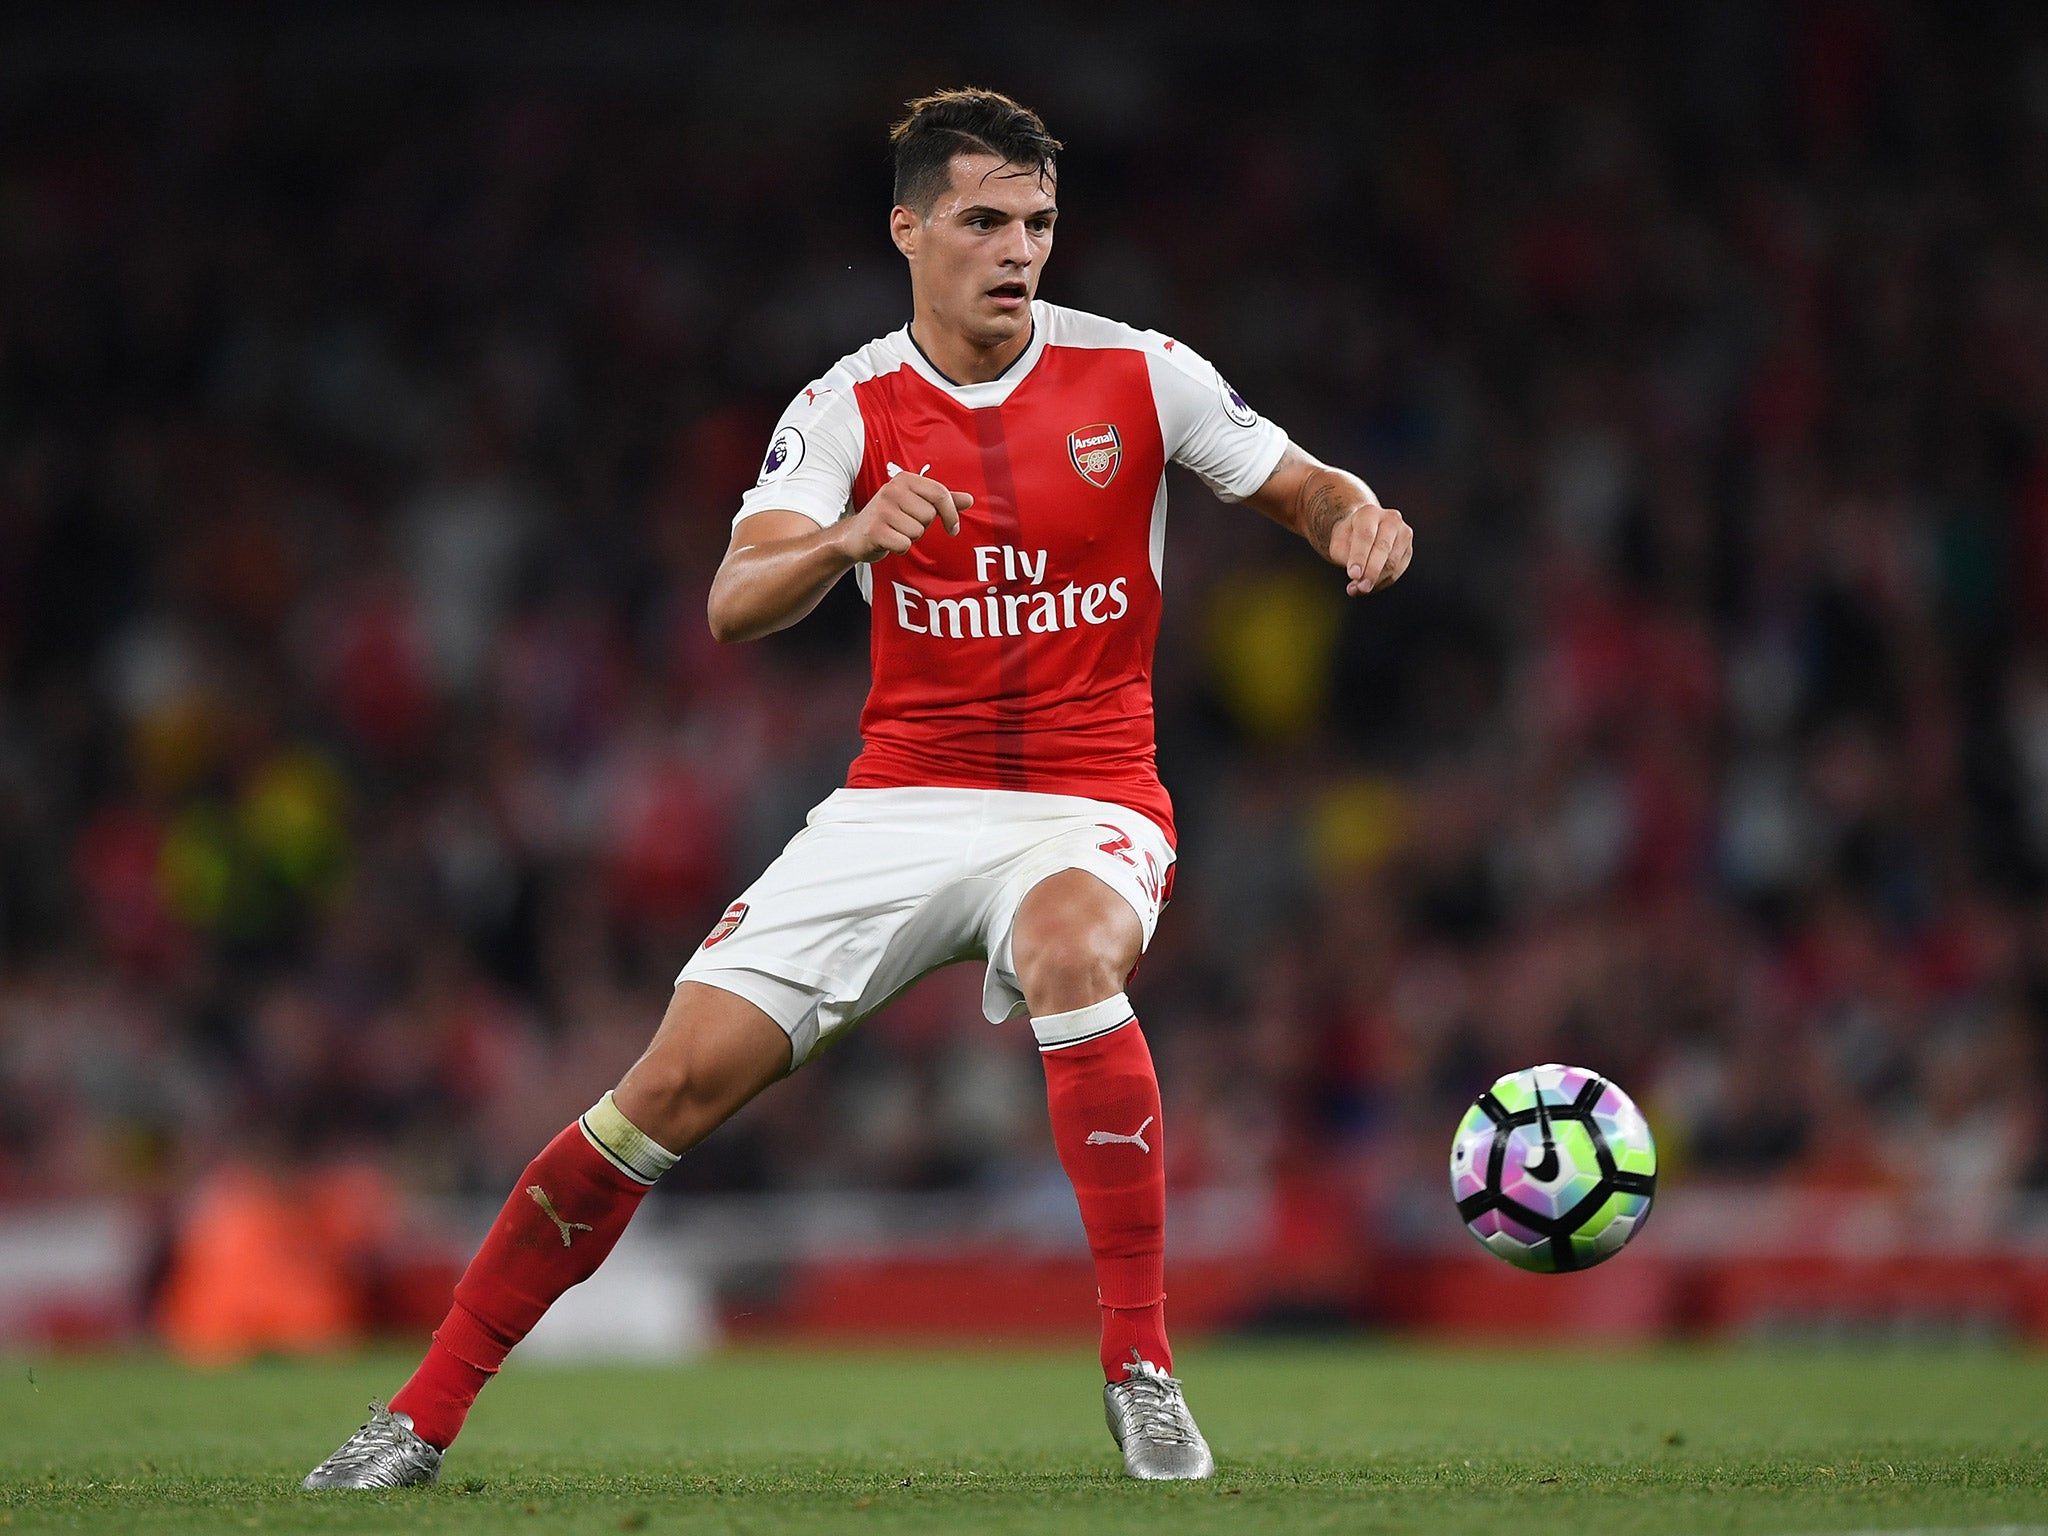 Arsenal vs Basel team news: Granit Xhaka and David Ospina start as Arsene Wenger refuses to ring the changes | The Independent